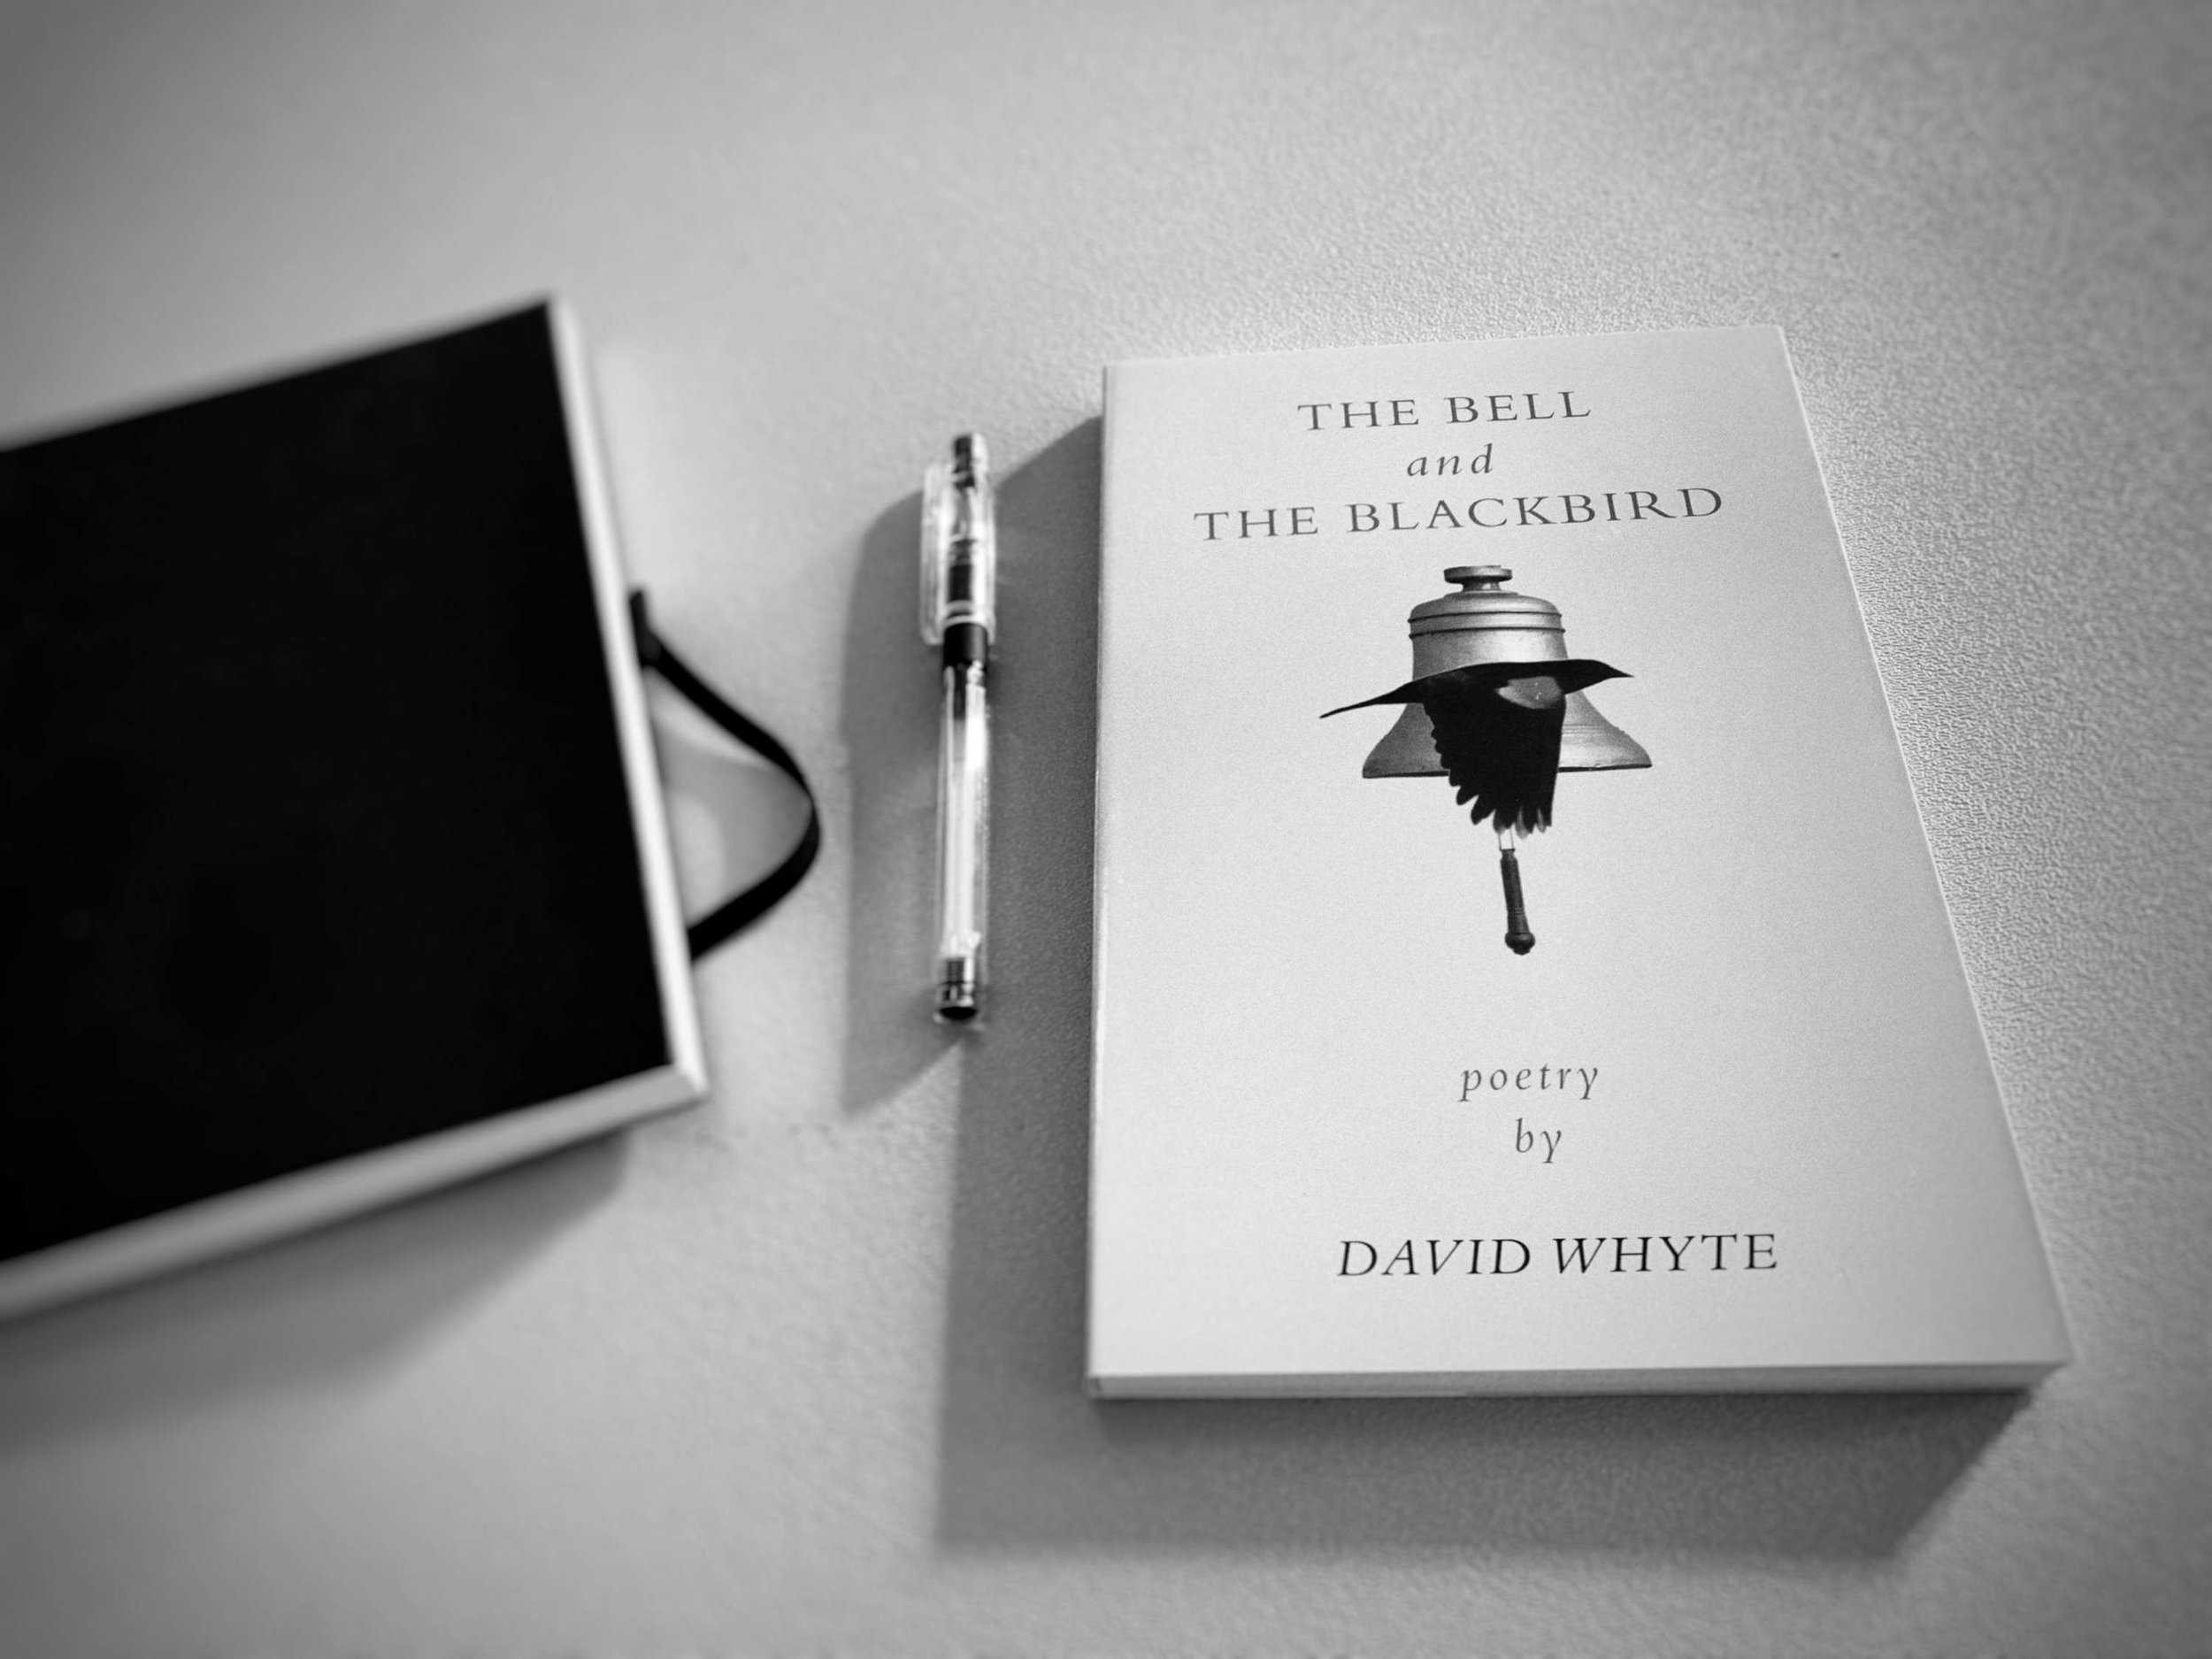 The Bell  and  The Blackbird,  poetry by David Whyte